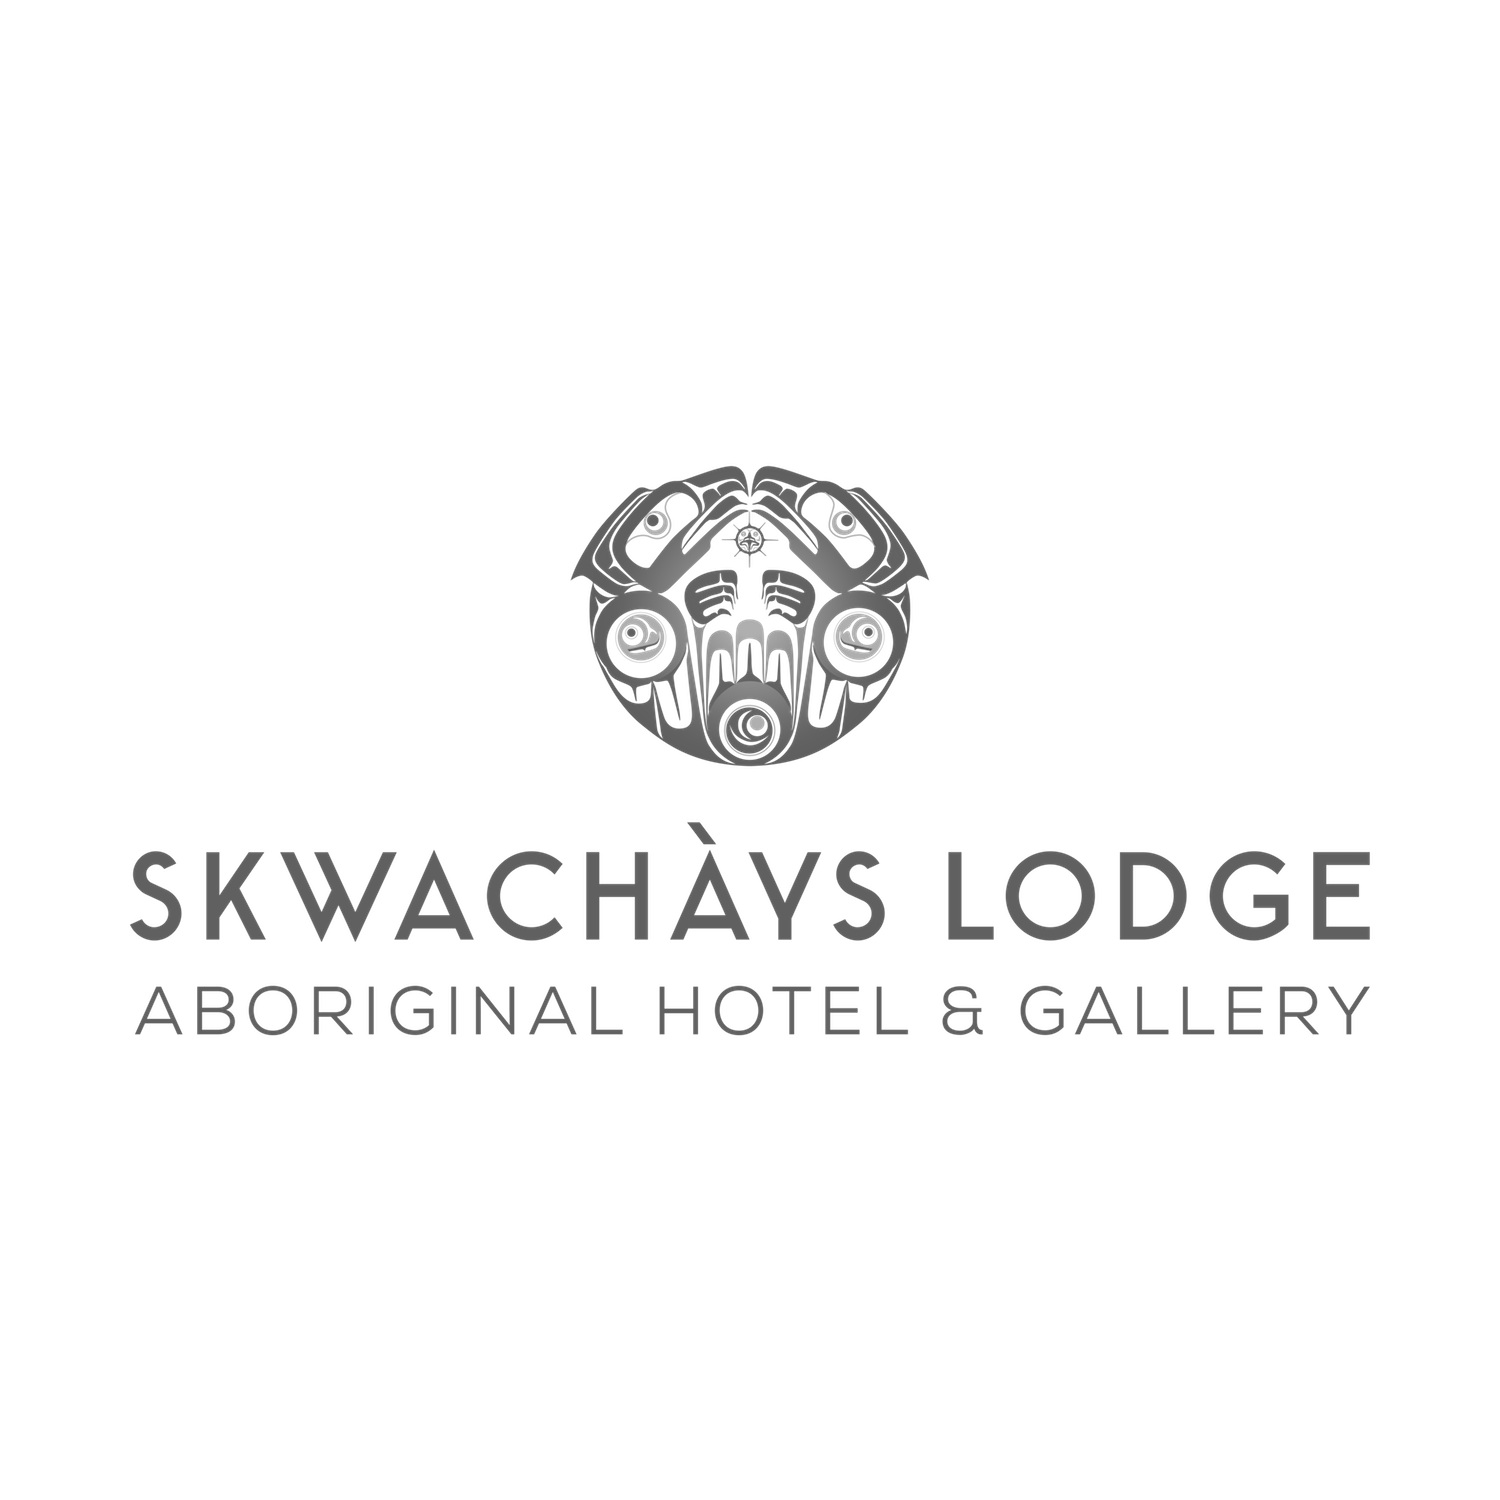 Skwachays Lodge